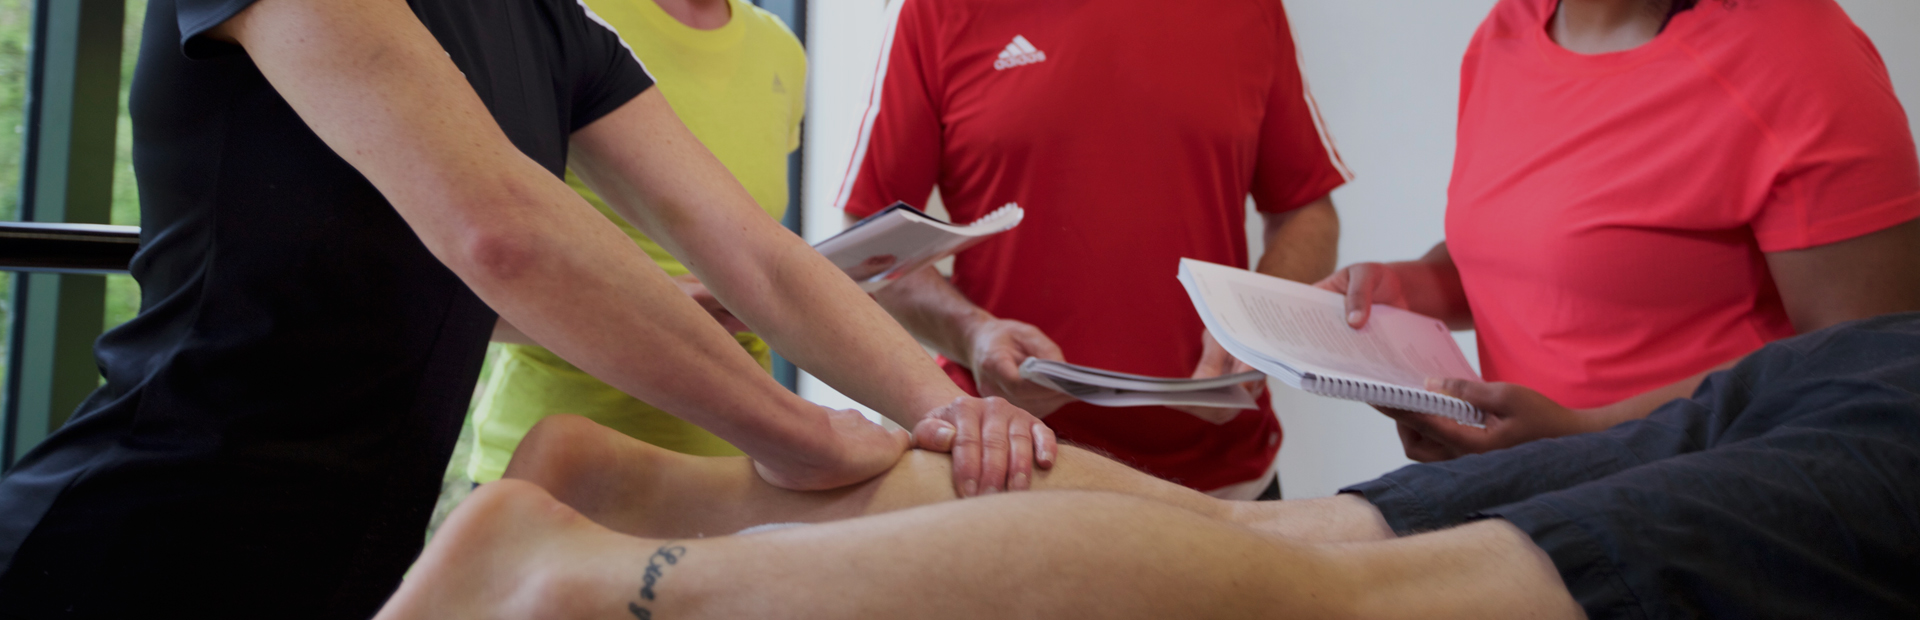 HFE tutor guiding sports massage students